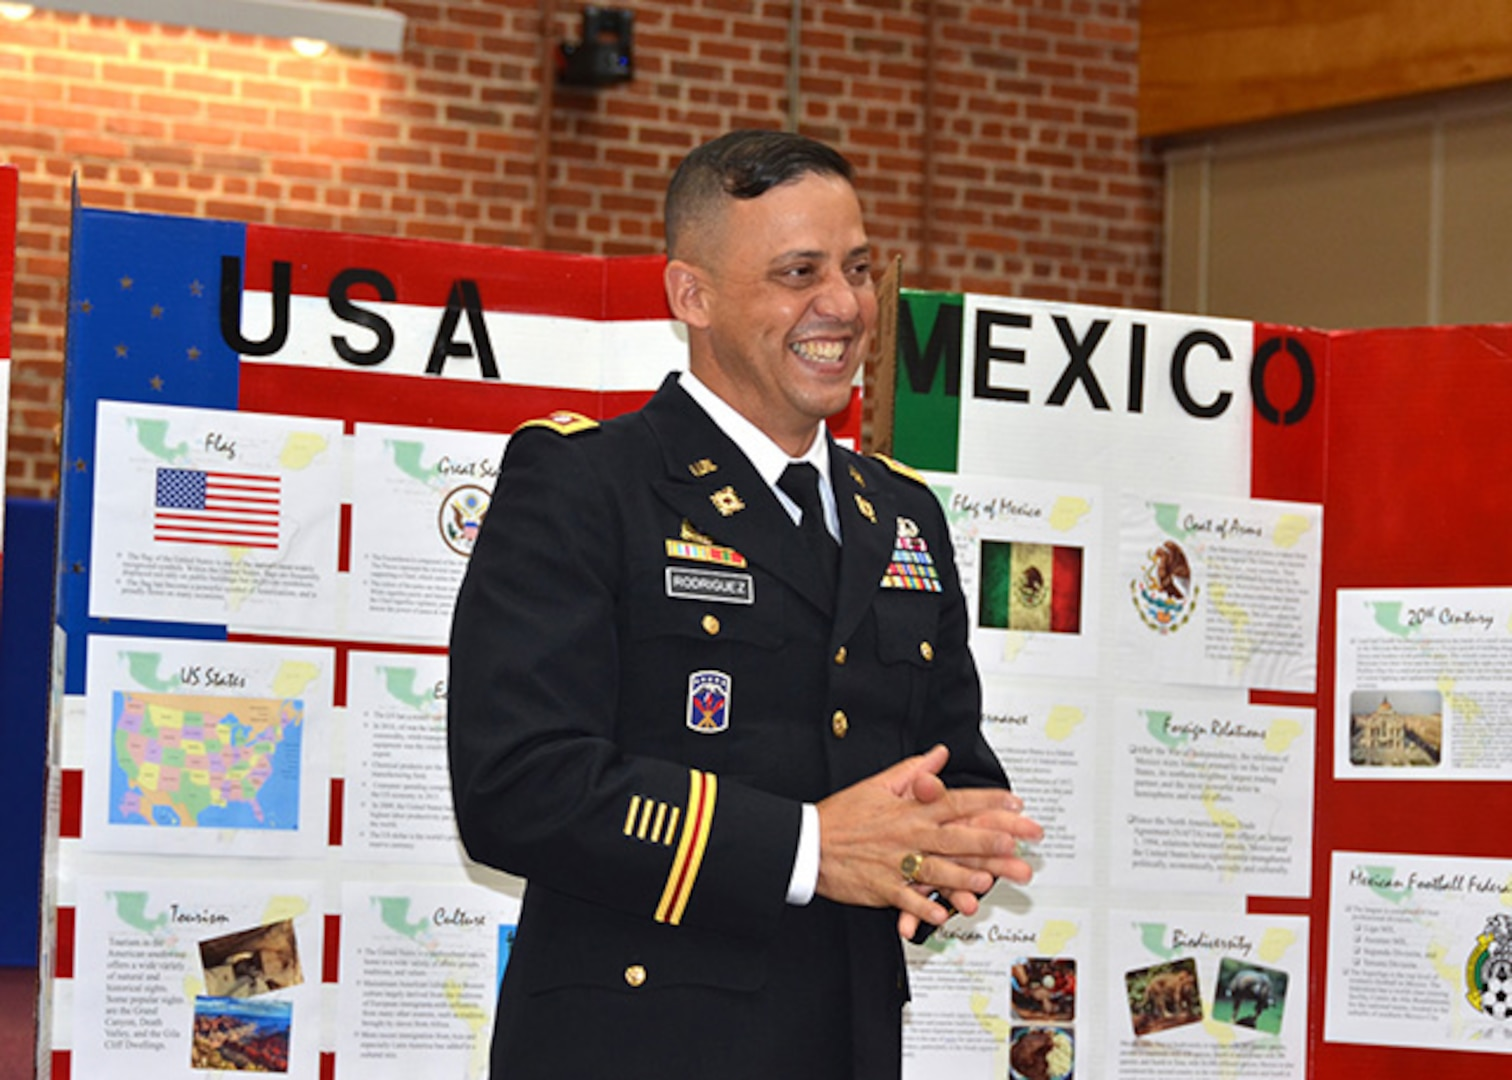 The Hispanic Heritage Month kickoff was held for Defense Logistics Agency employees on Defense Supply Center Richmond, Virginia, Sept. 16, 2016. Guest speaker Army Lt. Col. Luis Rodriguez  Exercise Support Division chief, Logistics Exercise and Simulations Directorate, U.S. Army Training and Doctrine Command from Fort Lee, Virginia speaks about the contributions Hispanics make to our nation and his personal perspectives as a Hispanic American.